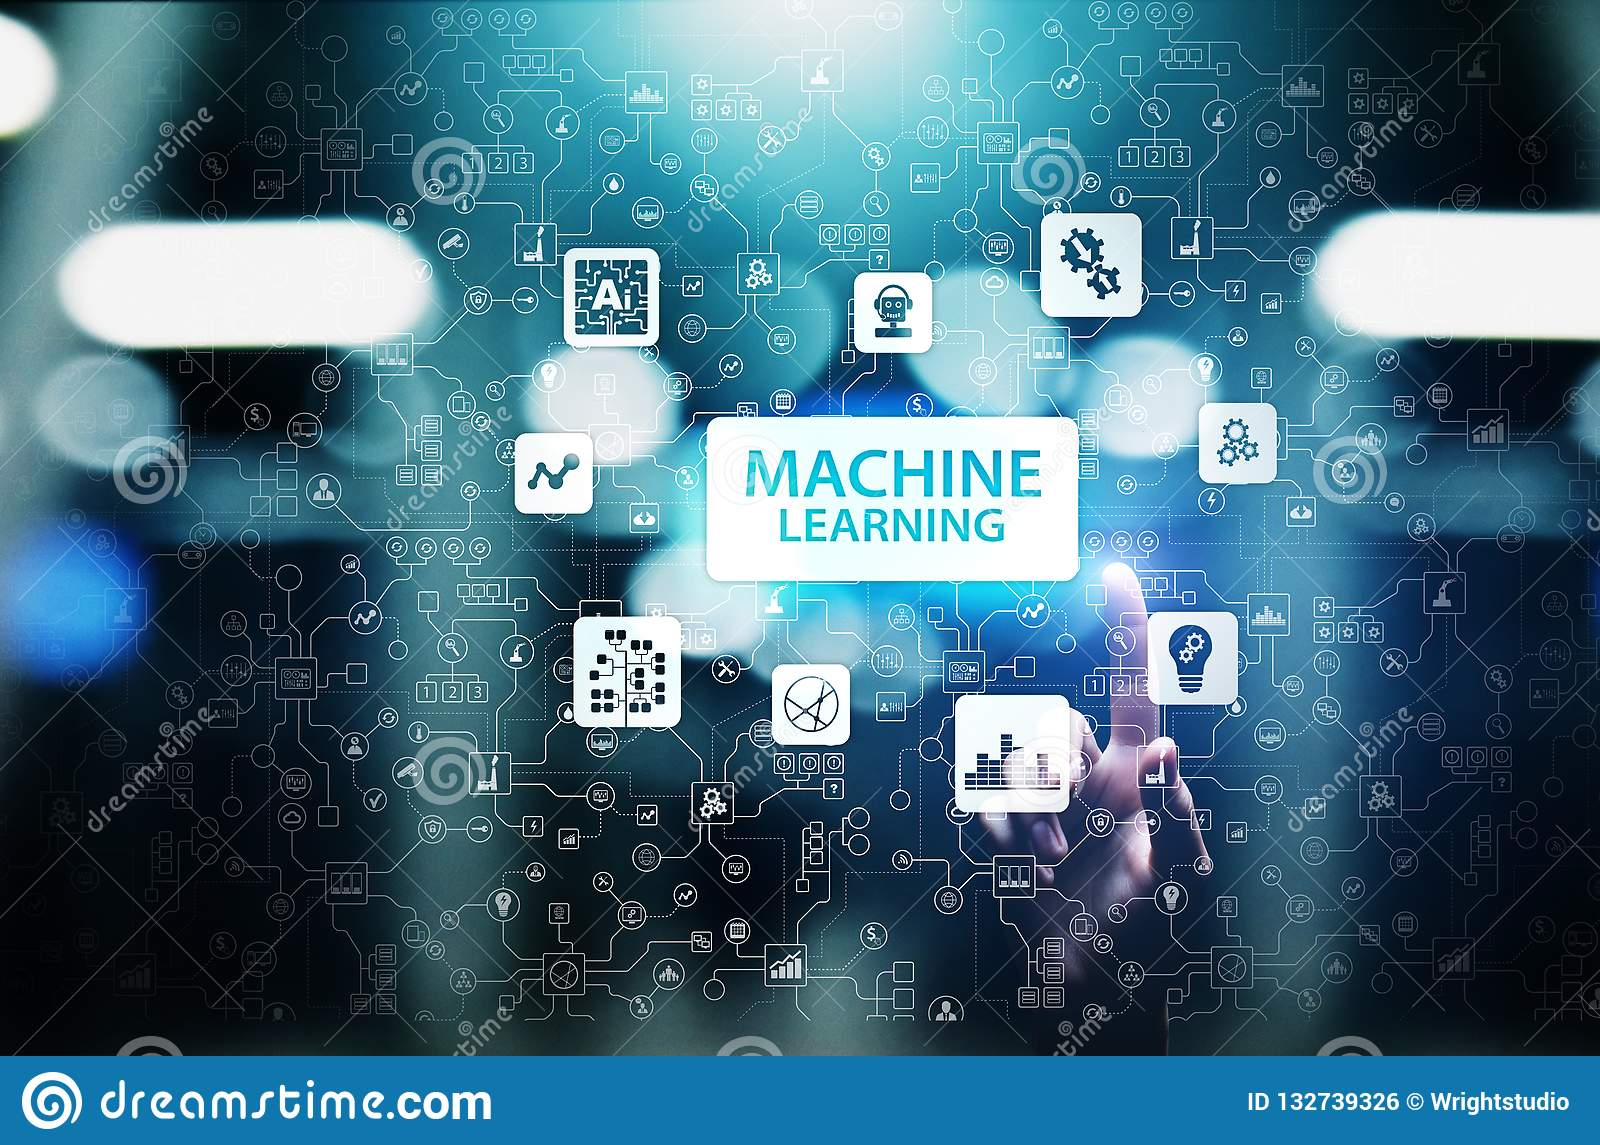 Machine Deep learning algorithms, Artificial intelligence AI , Automation and modern technology in business as concept.